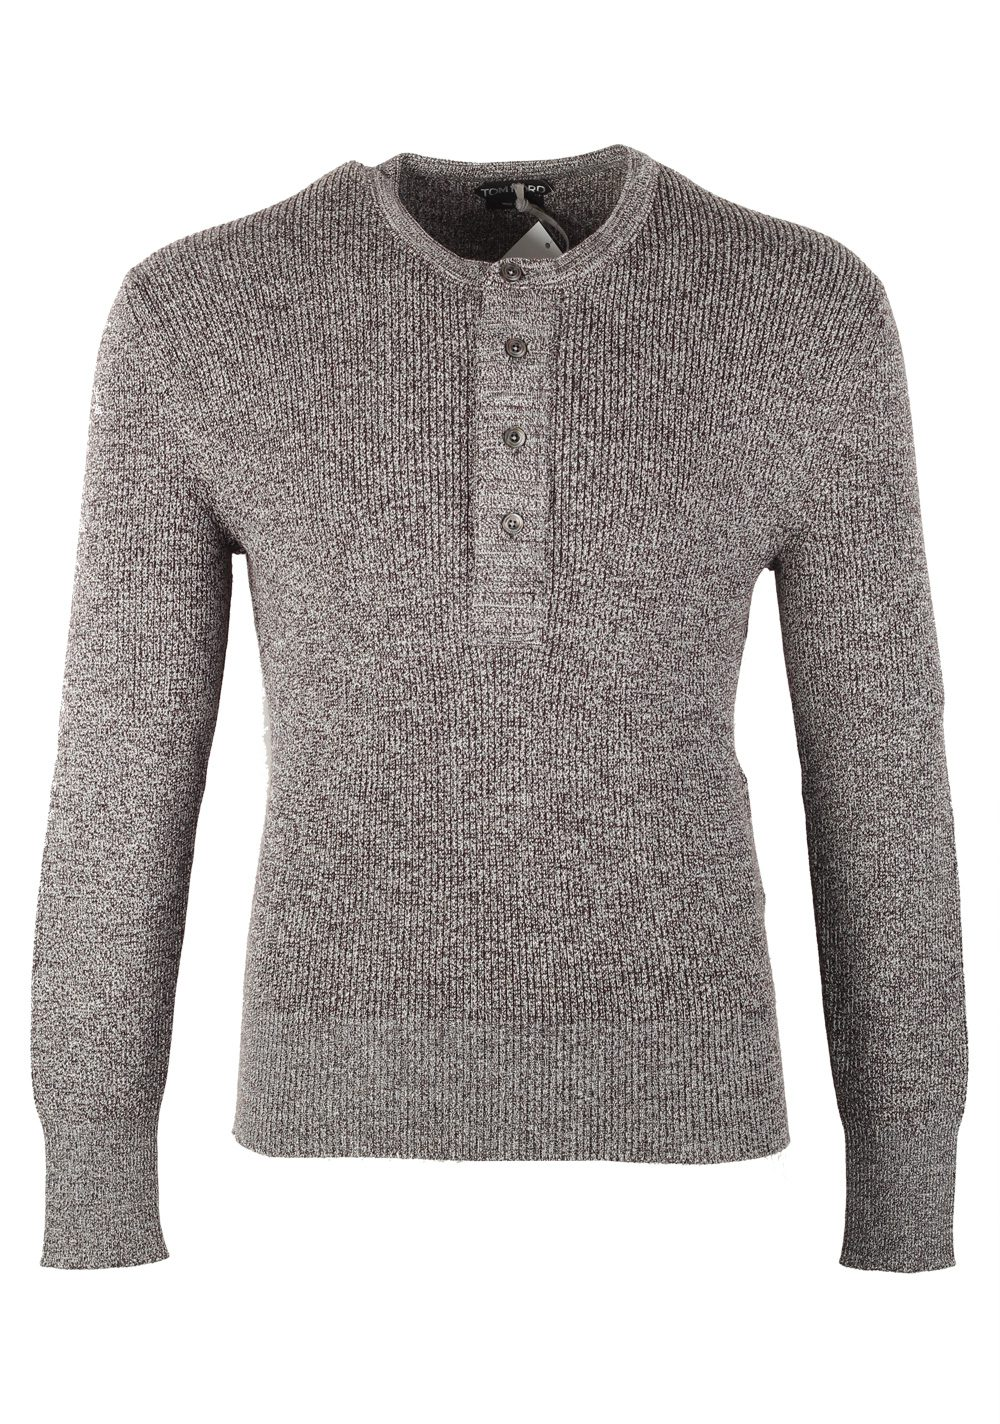 TOM FORD Gray Long Sleeve Henley Sweater Size 48 / 38R U.S. In Wool Silk | Costume Limité